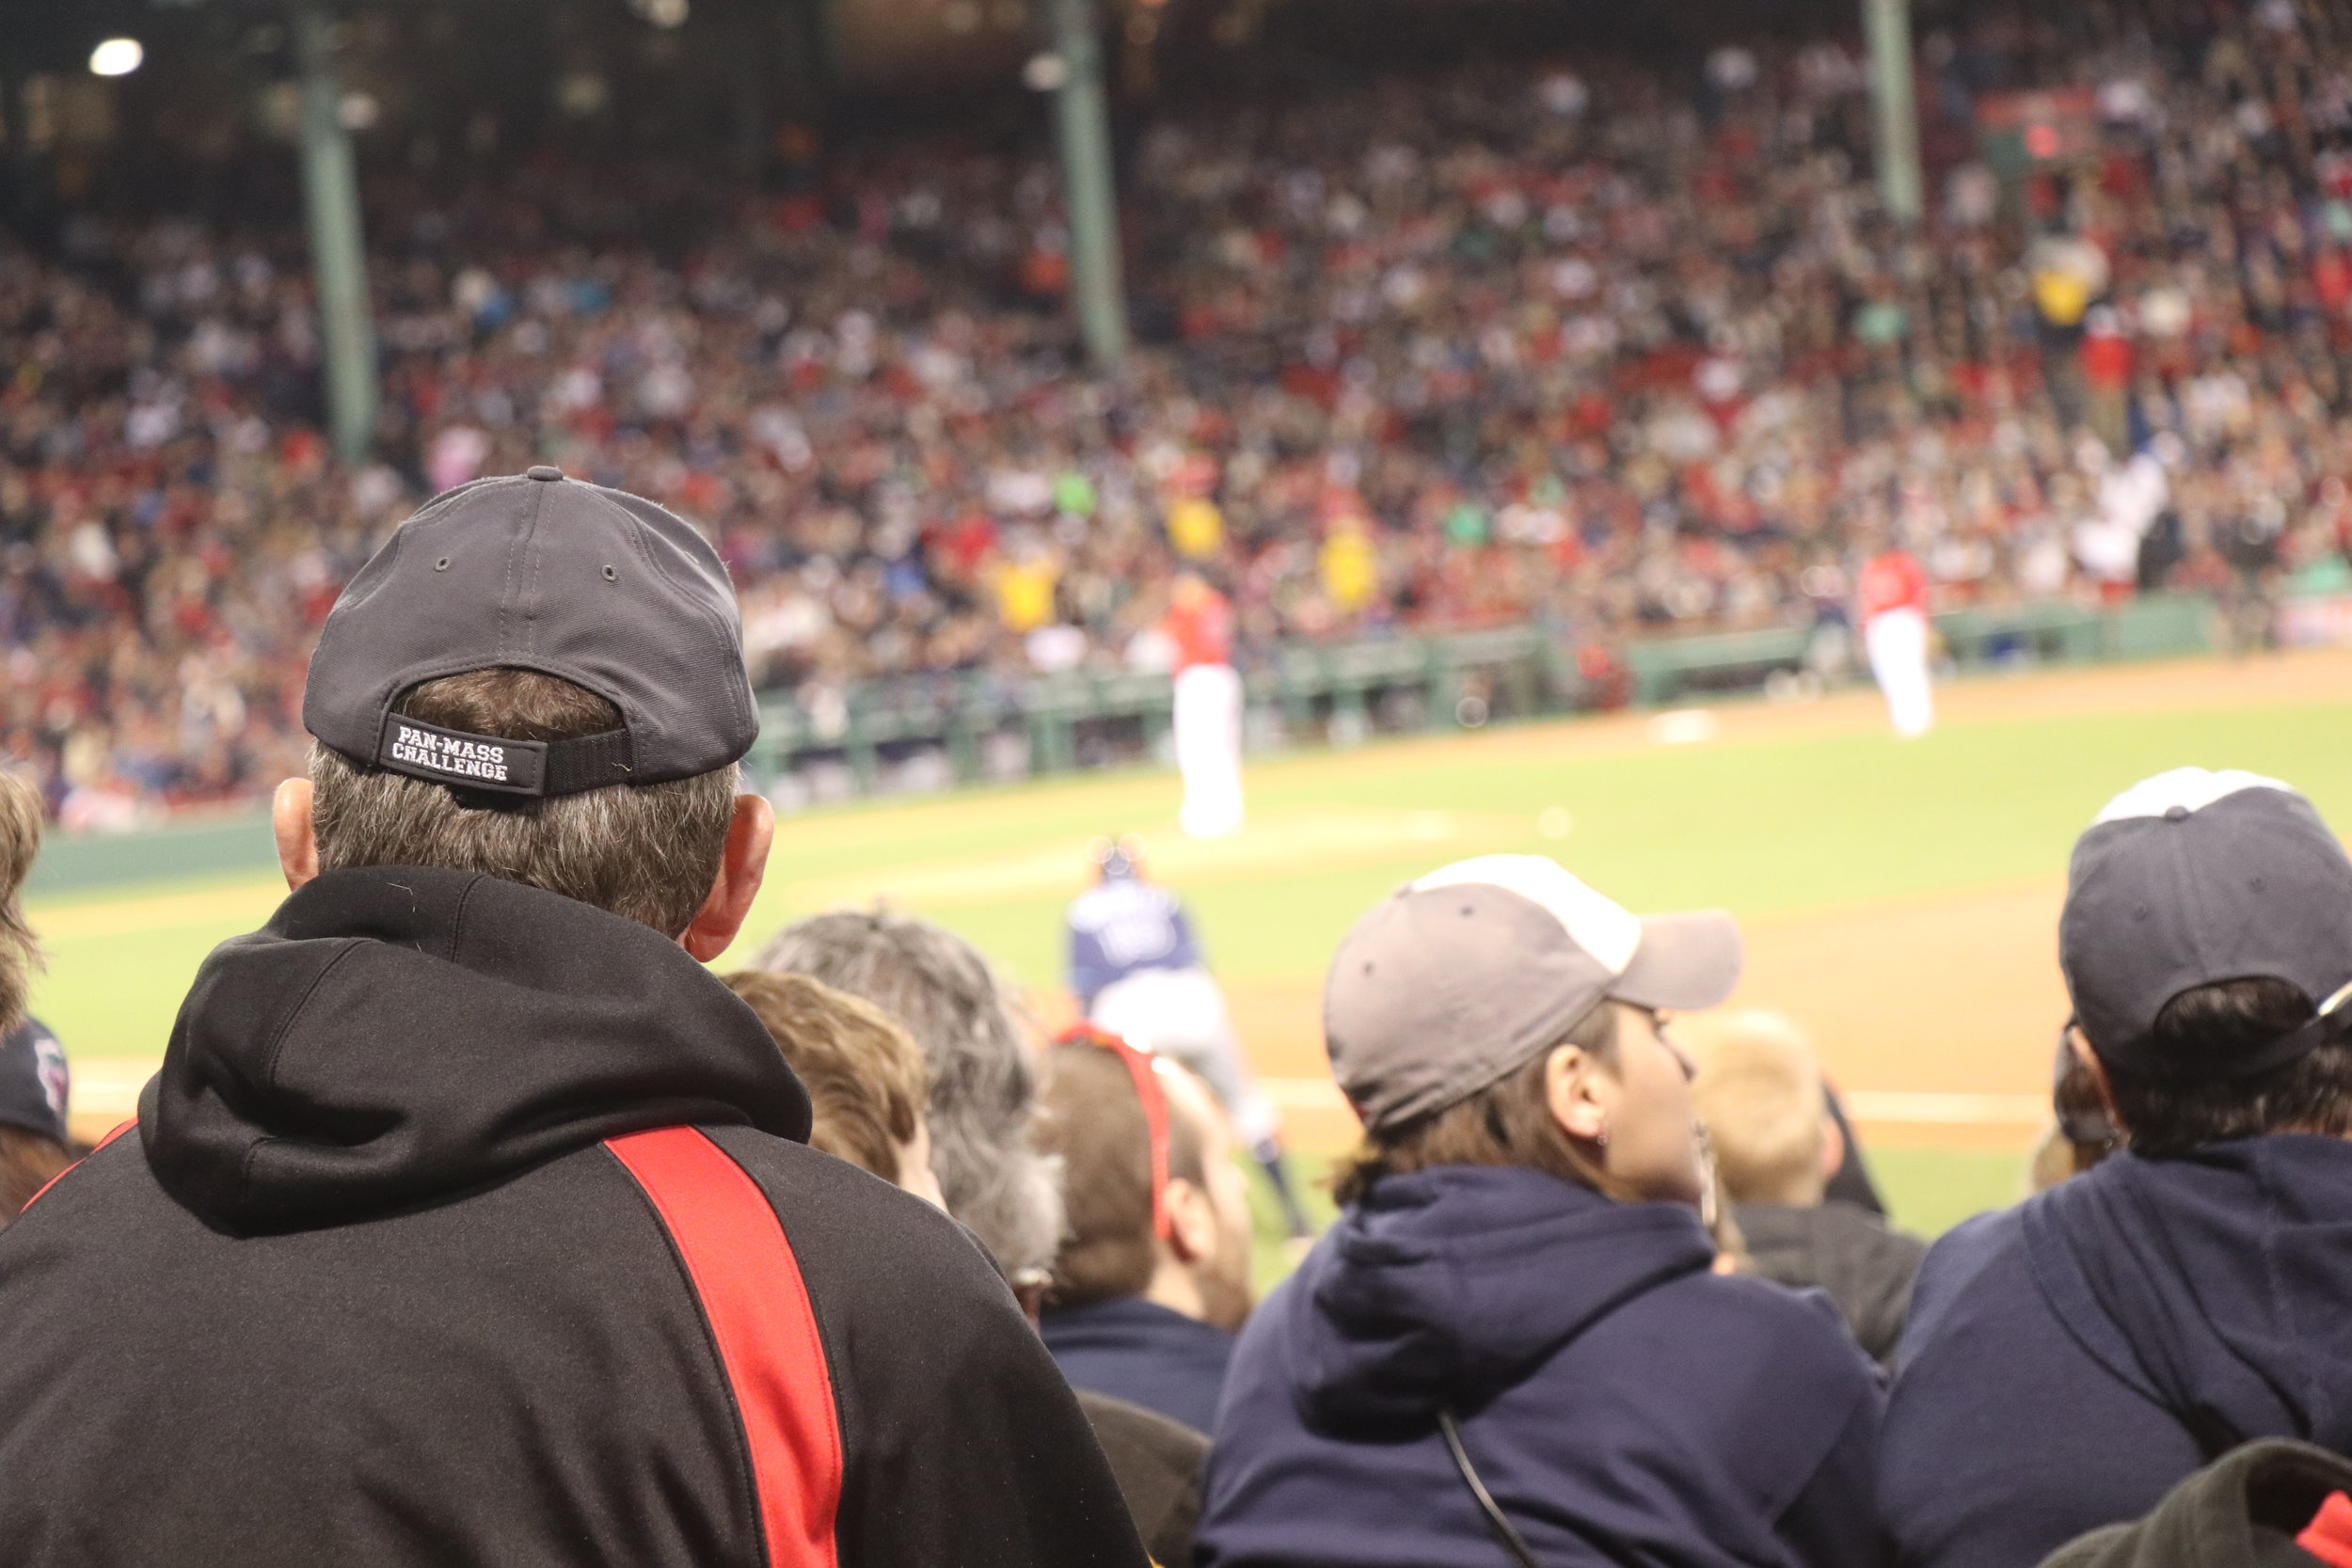 Fan watching the game - Rays up at bat - Sox in the field